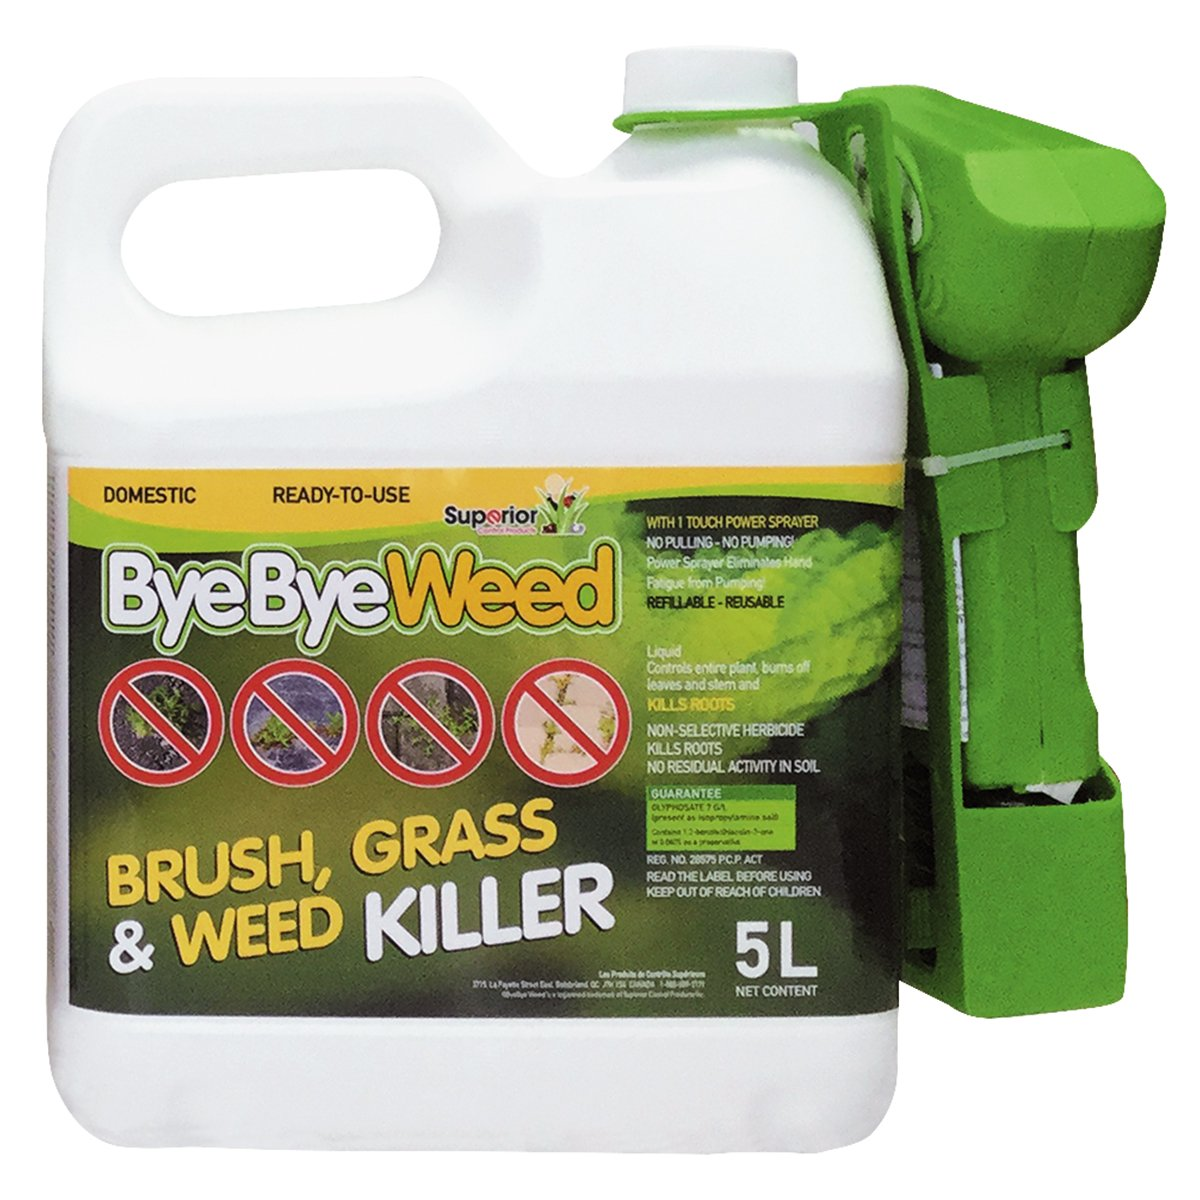 BYEBYE Weed RTU Brush, Grass & Weed Killer with 1 Touch Power Sprayer